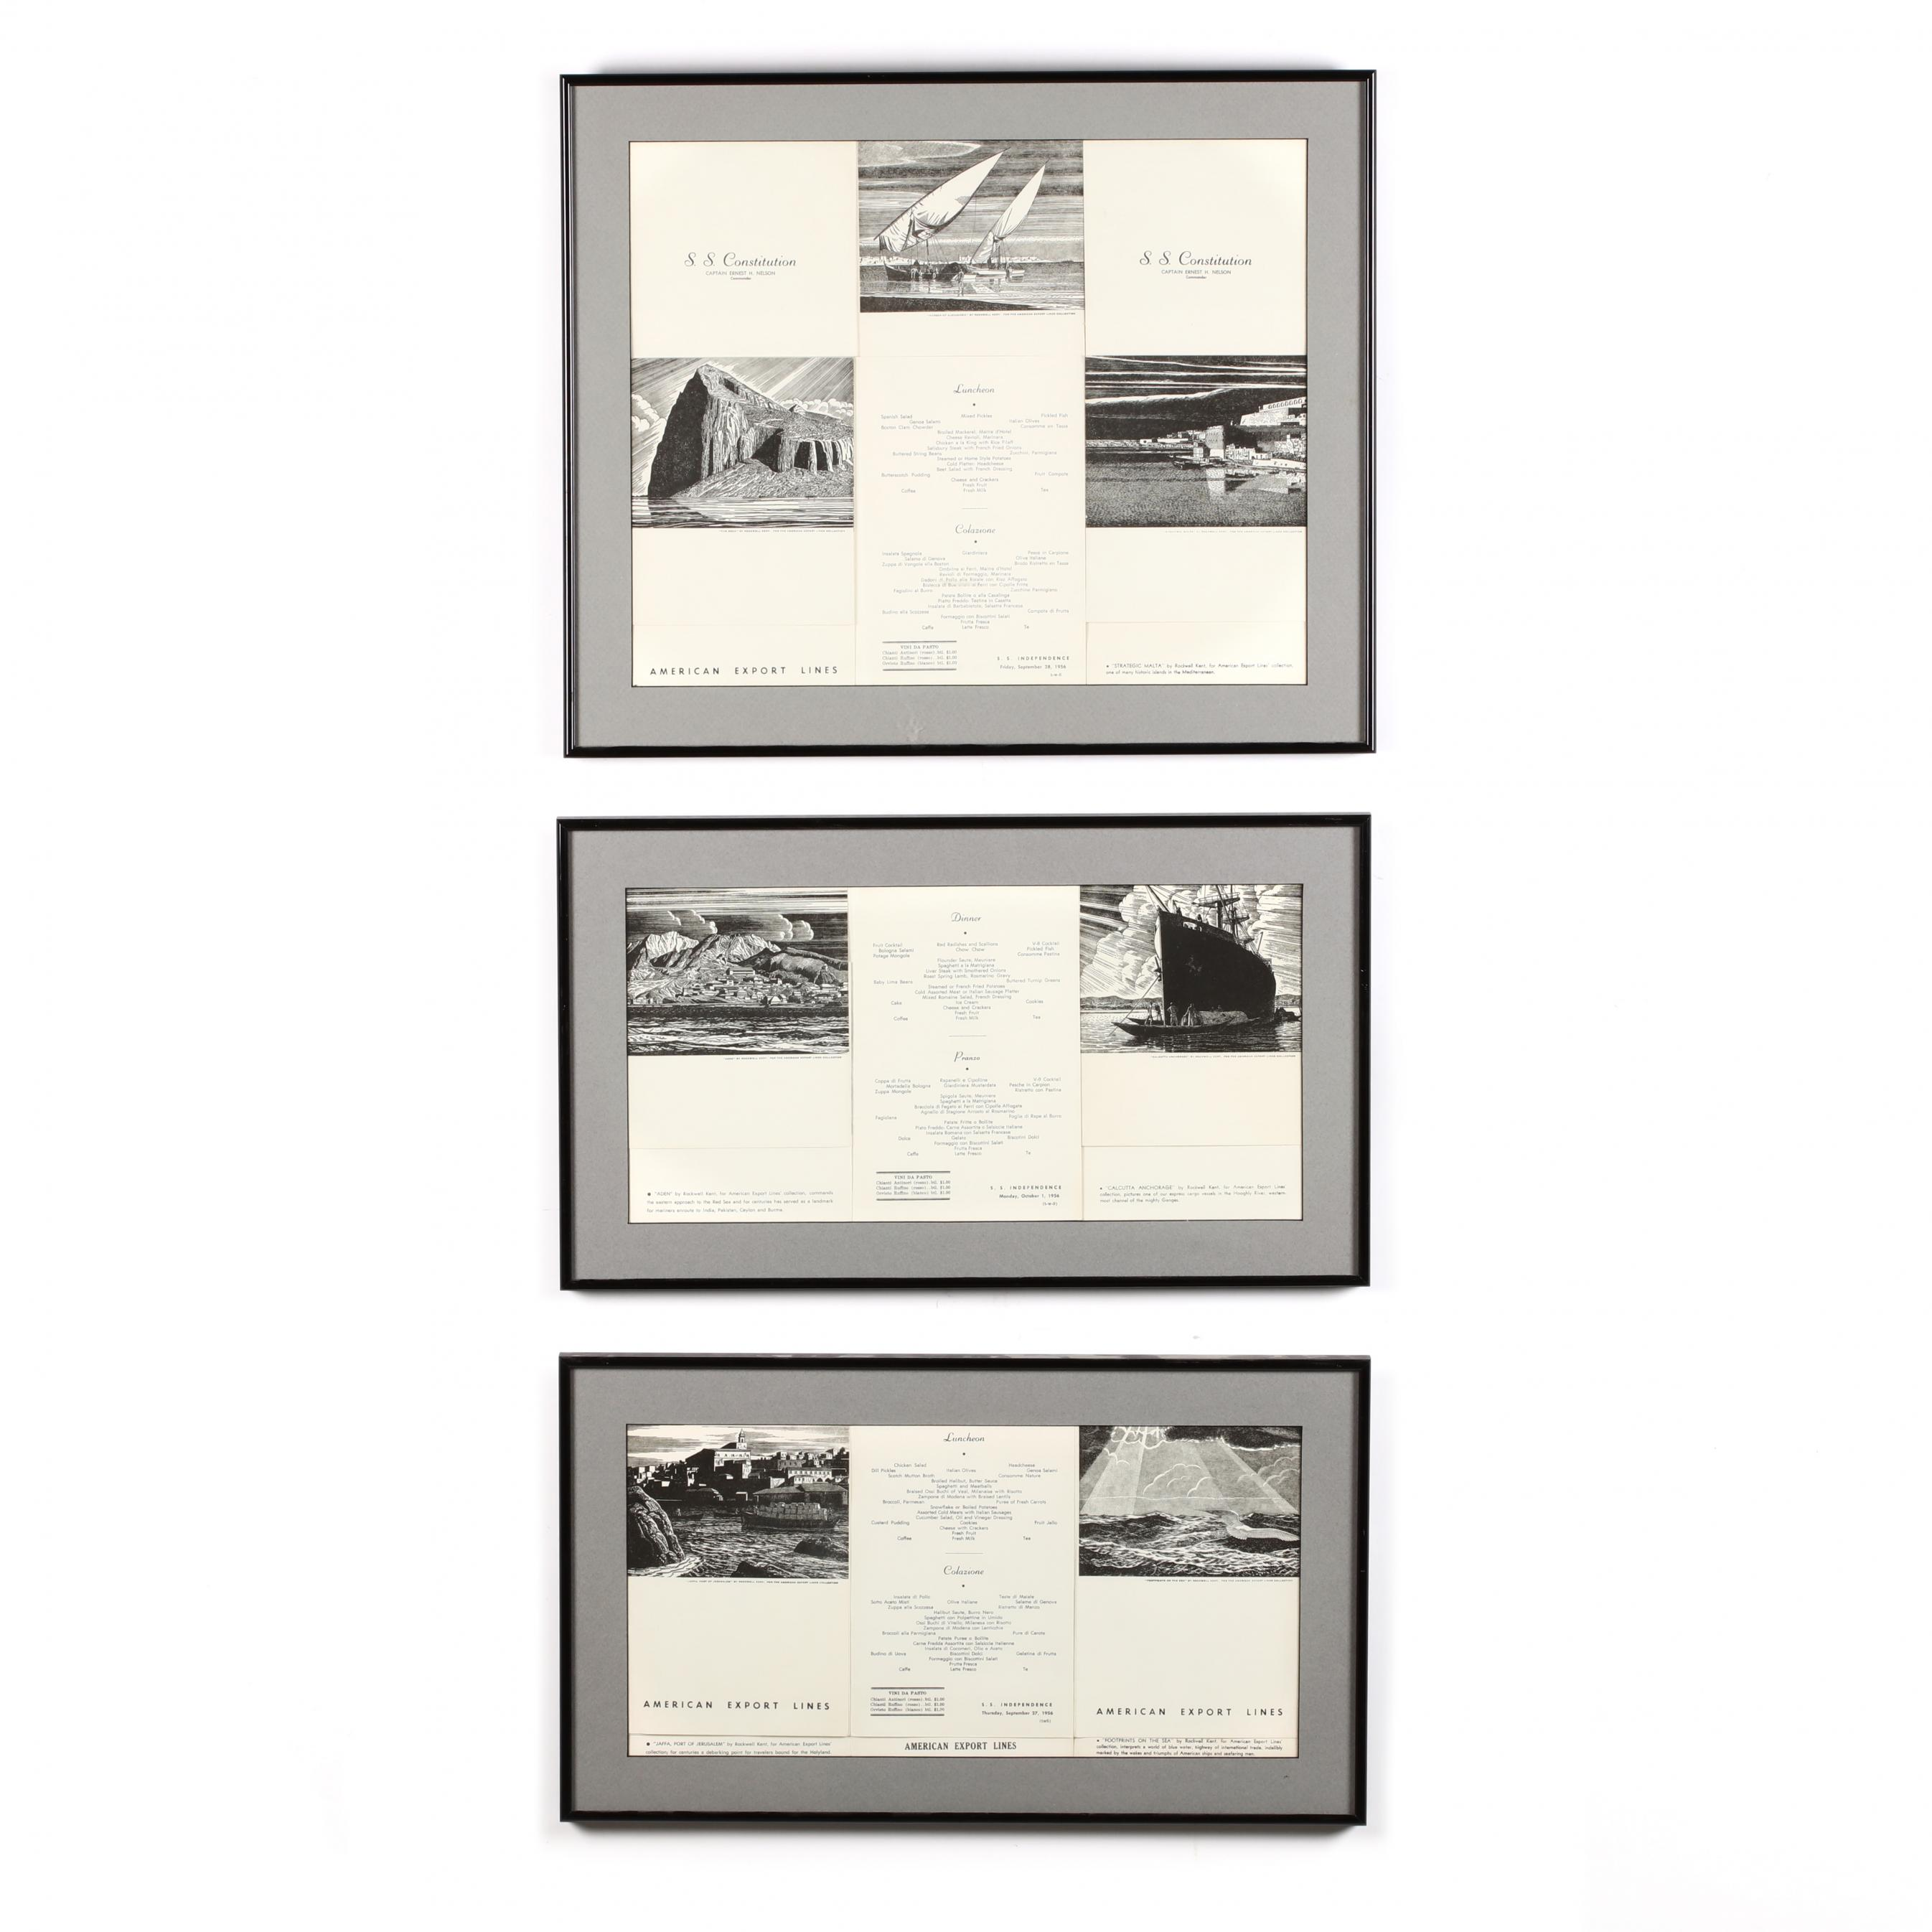 three-framed-menus-for-cruise-lines-1956-illustrated-by-rockwell-kent